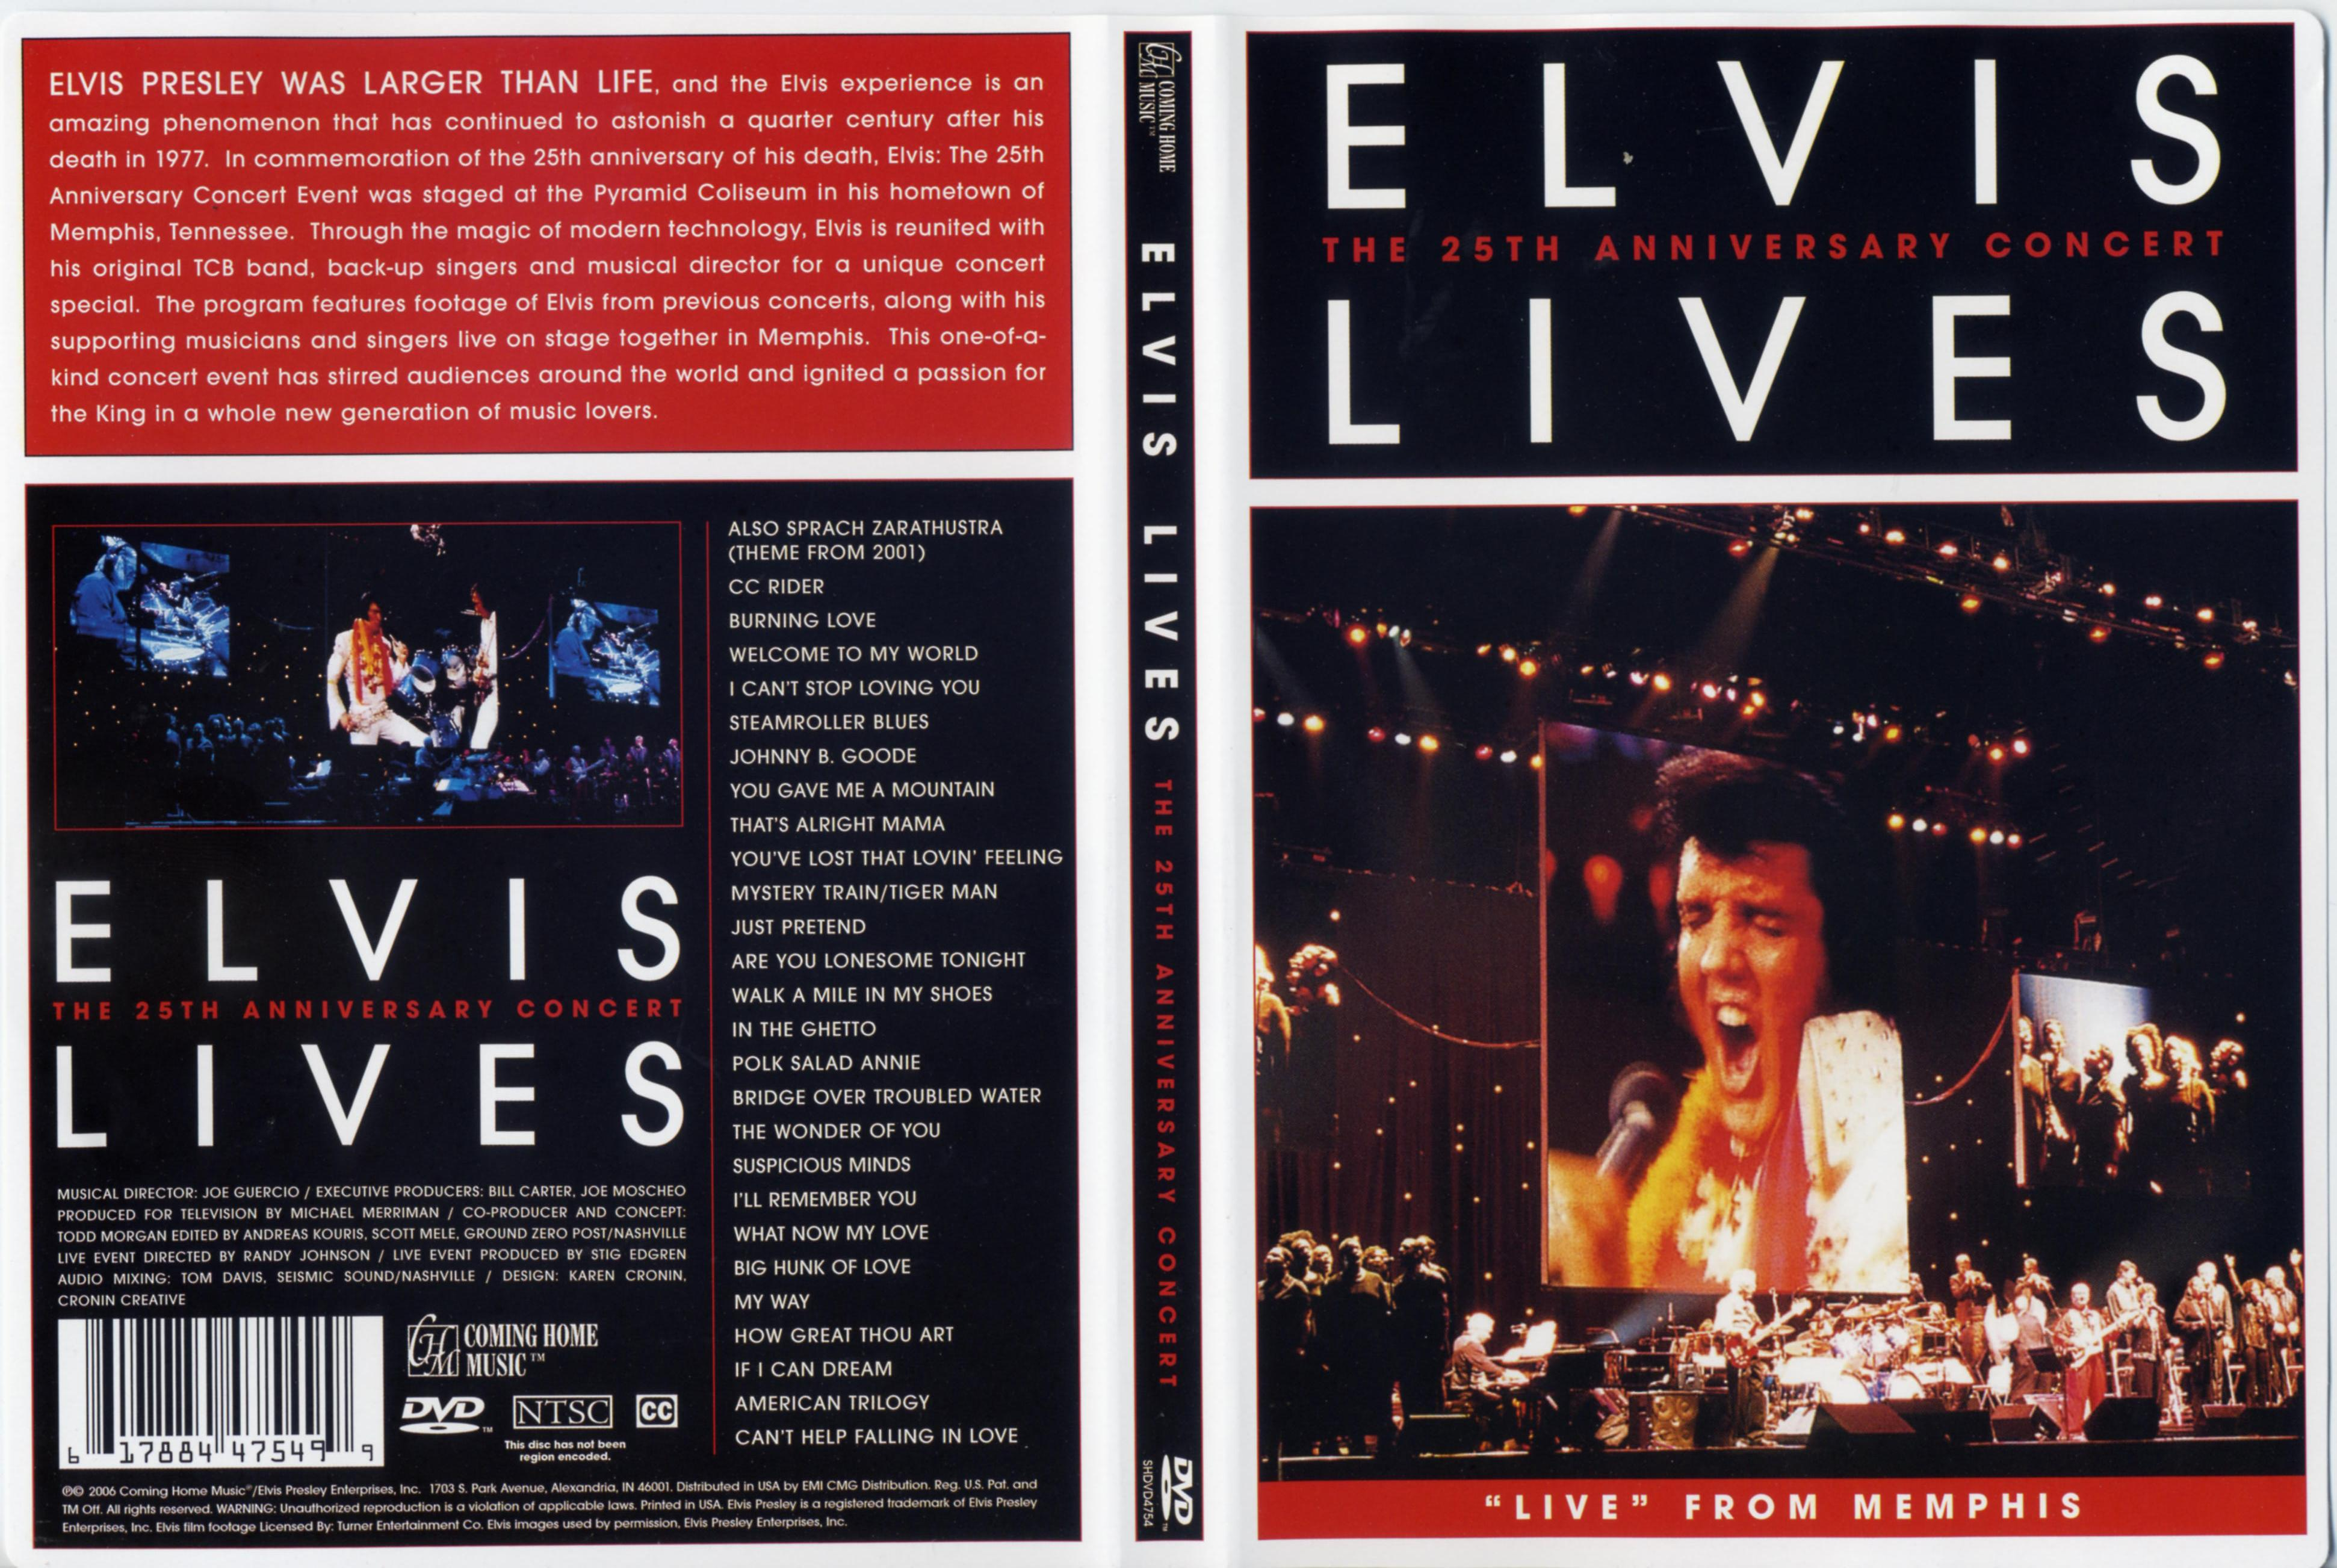 elvis lives 25th anniversary concert dvd